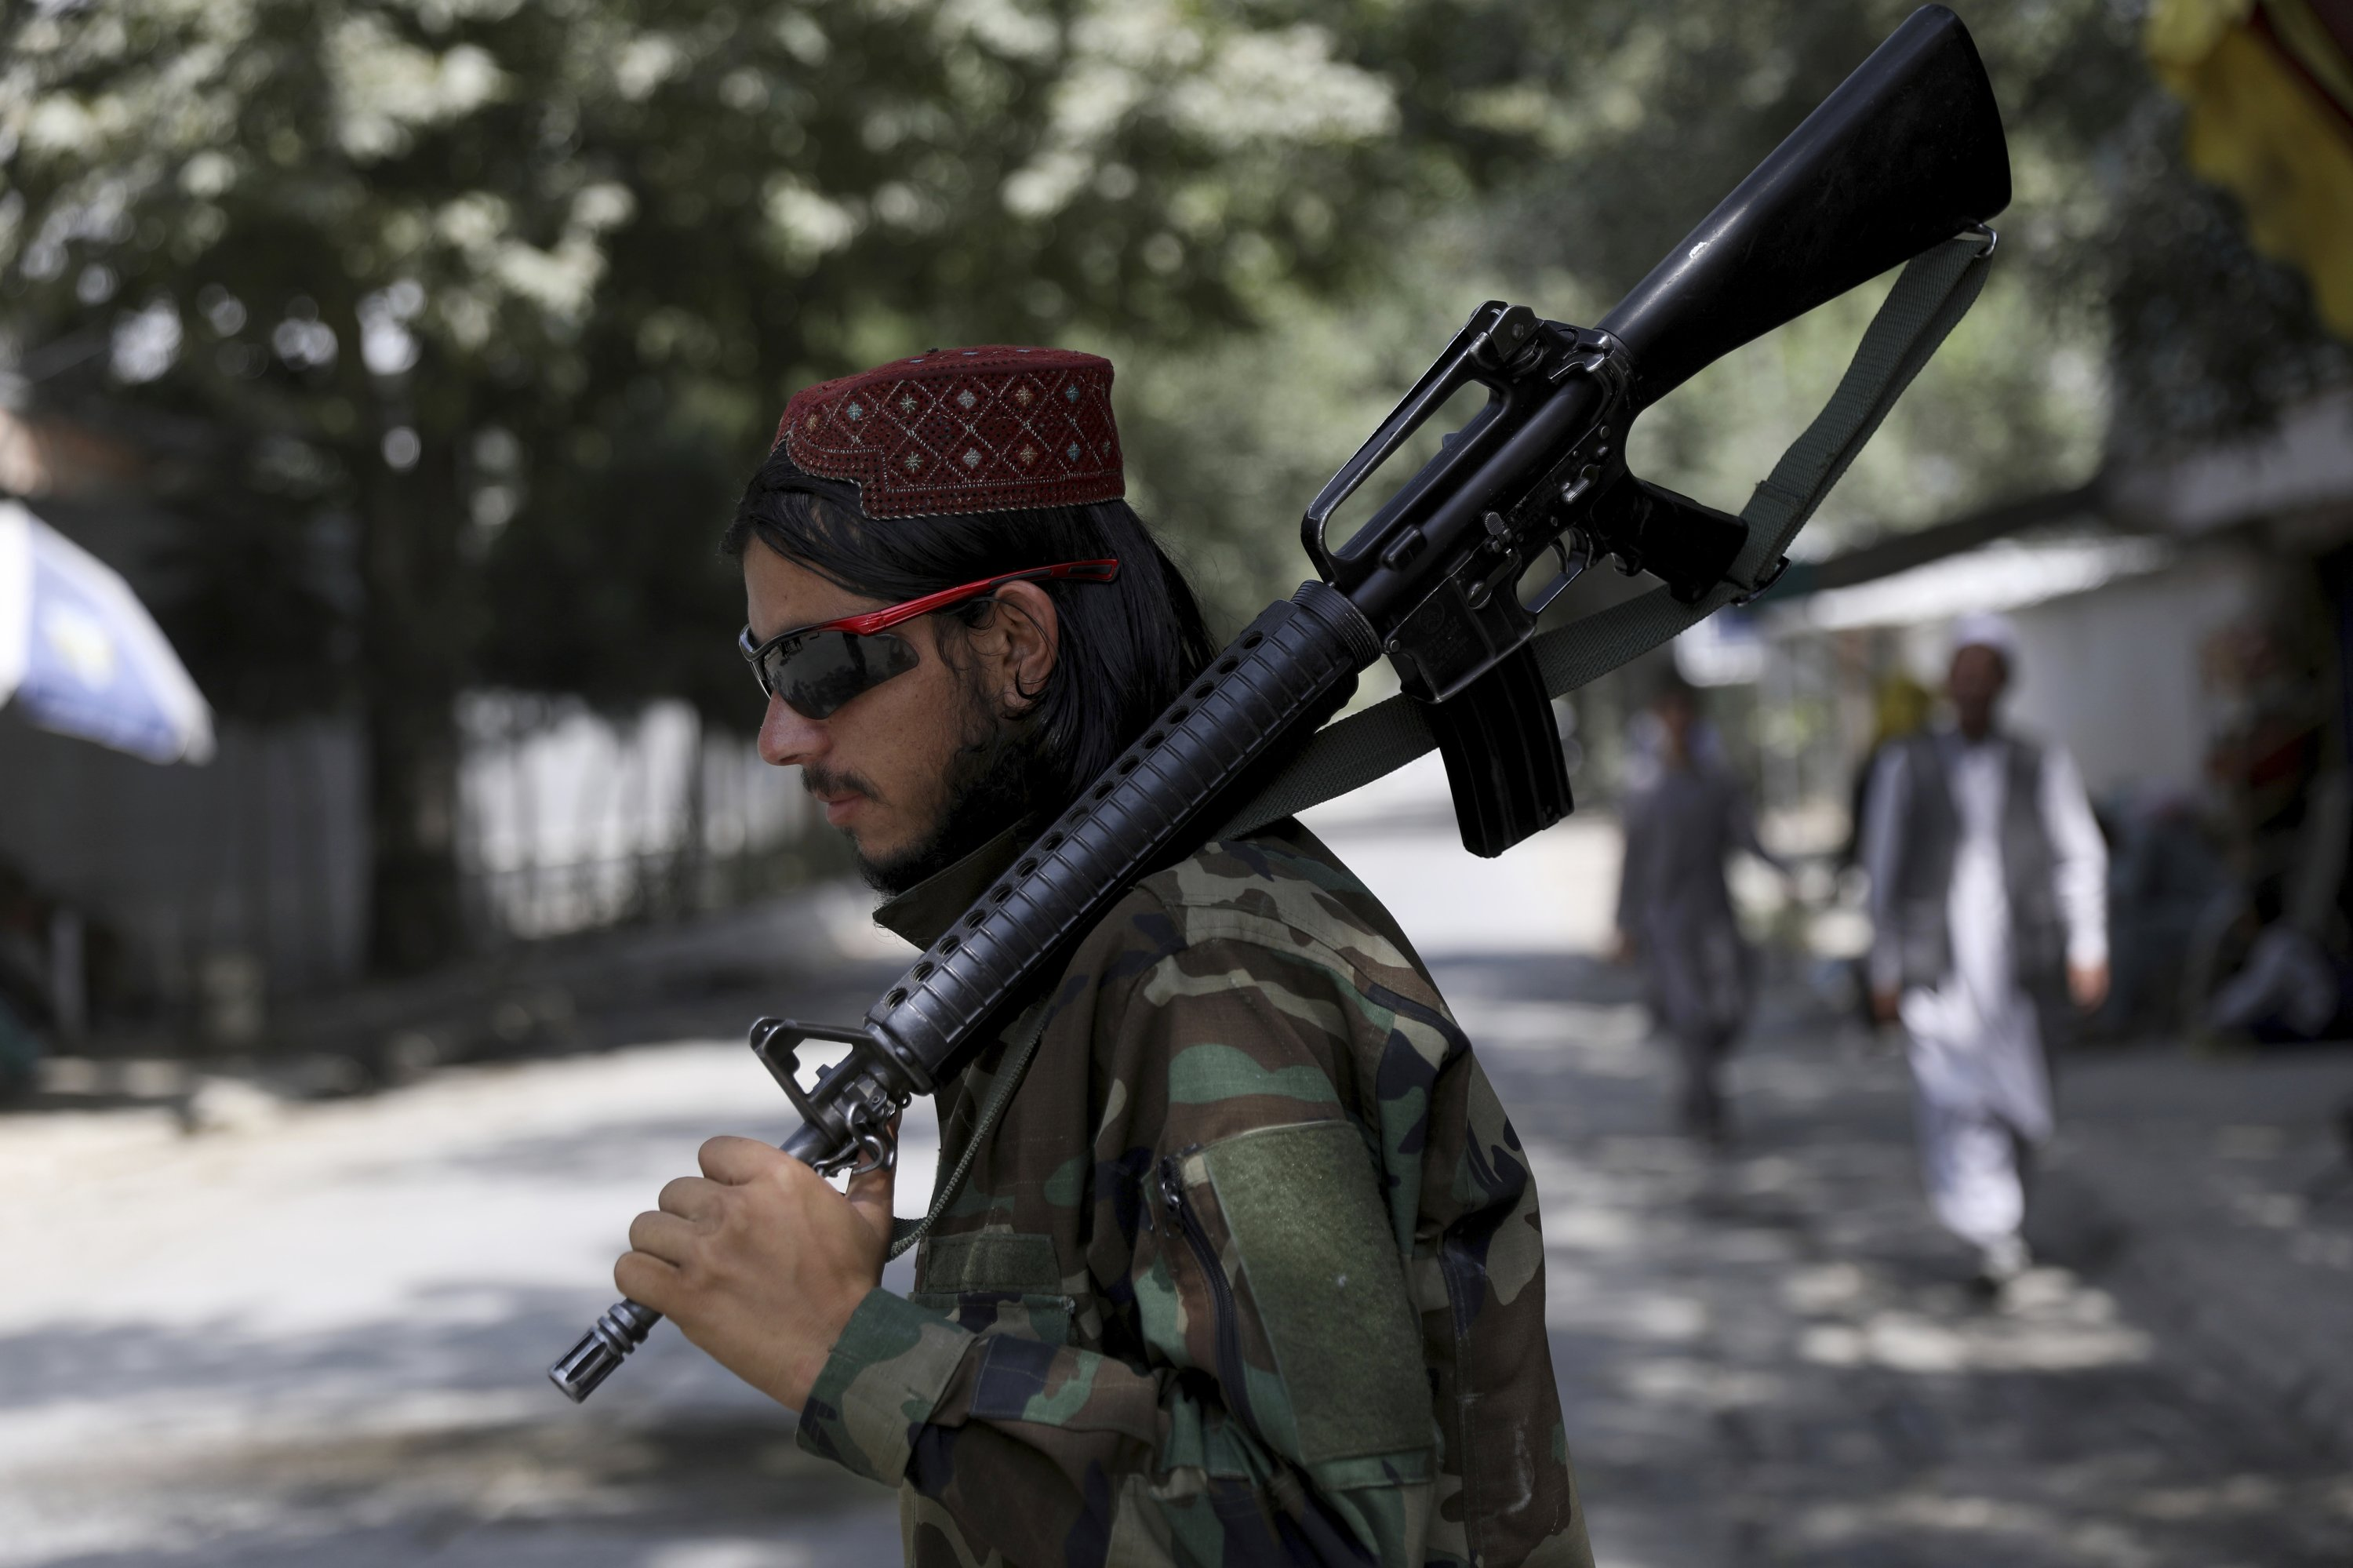 A Taliban fighter stands guard at a checkpoint in the Wazir Akbar Khan neighborhood in the city of Kabul, Afghanistan, Aug. 22, 2021. (AP Photo)